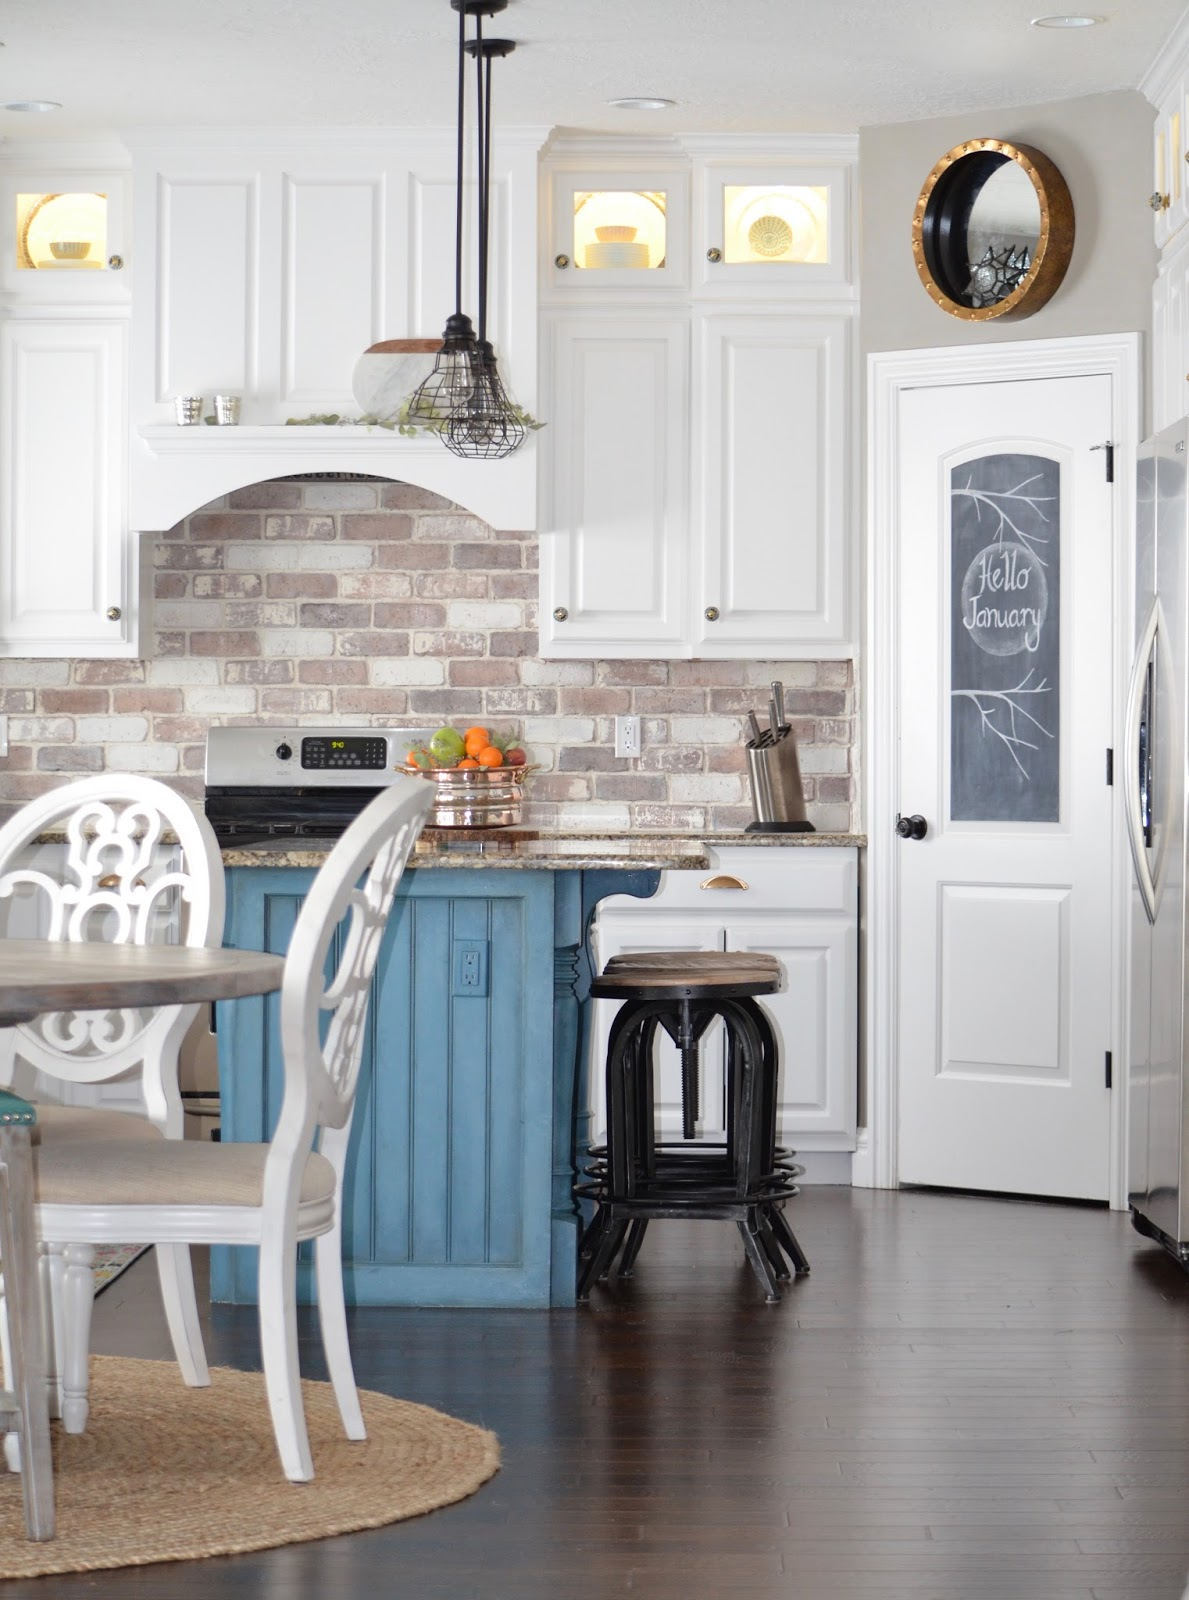 diy brick backsplash tutorial, farmhouse kitchen, brick veneer